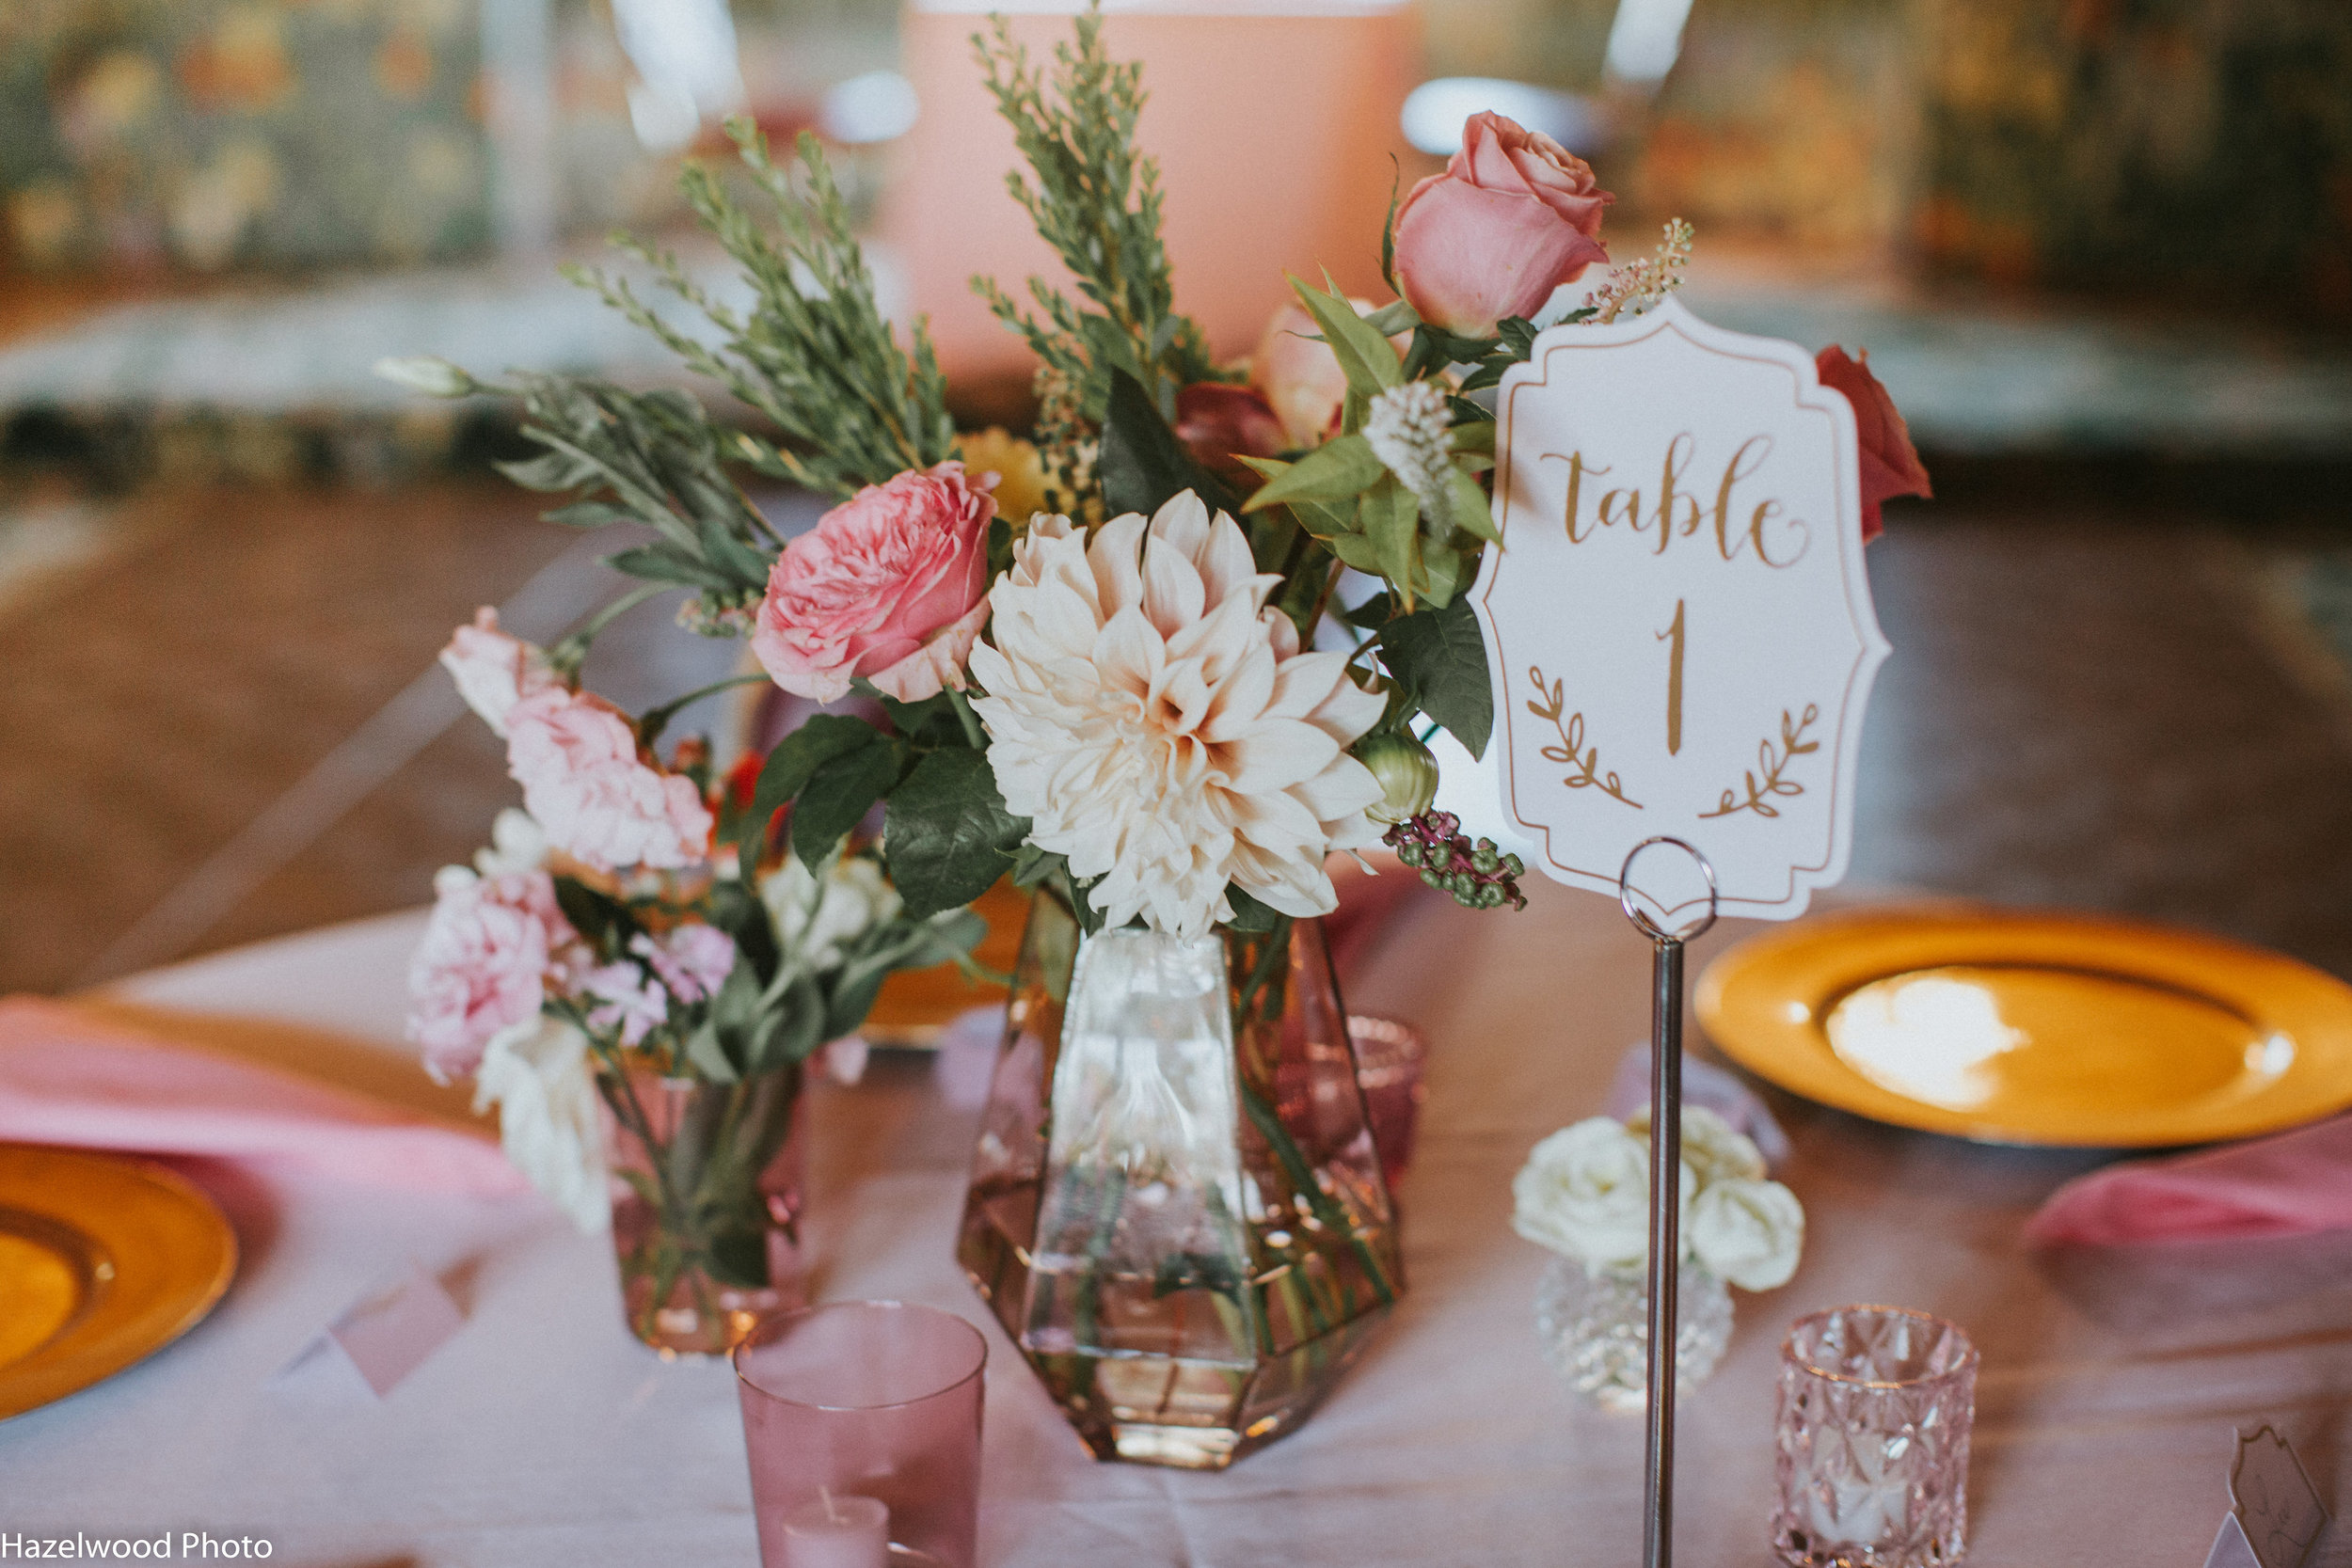 Weddings & Events - Welcoming intimate gathering and lavish events, Madonna Inn's historic charm and beautiful indoor and outdoor venues, are worthy of your next special occasion..Banquet Office HoursMonday - Saturday 9:00 a.m. to 5:00 p.m.(805) 784-2410 | banquets@madonnainn.com